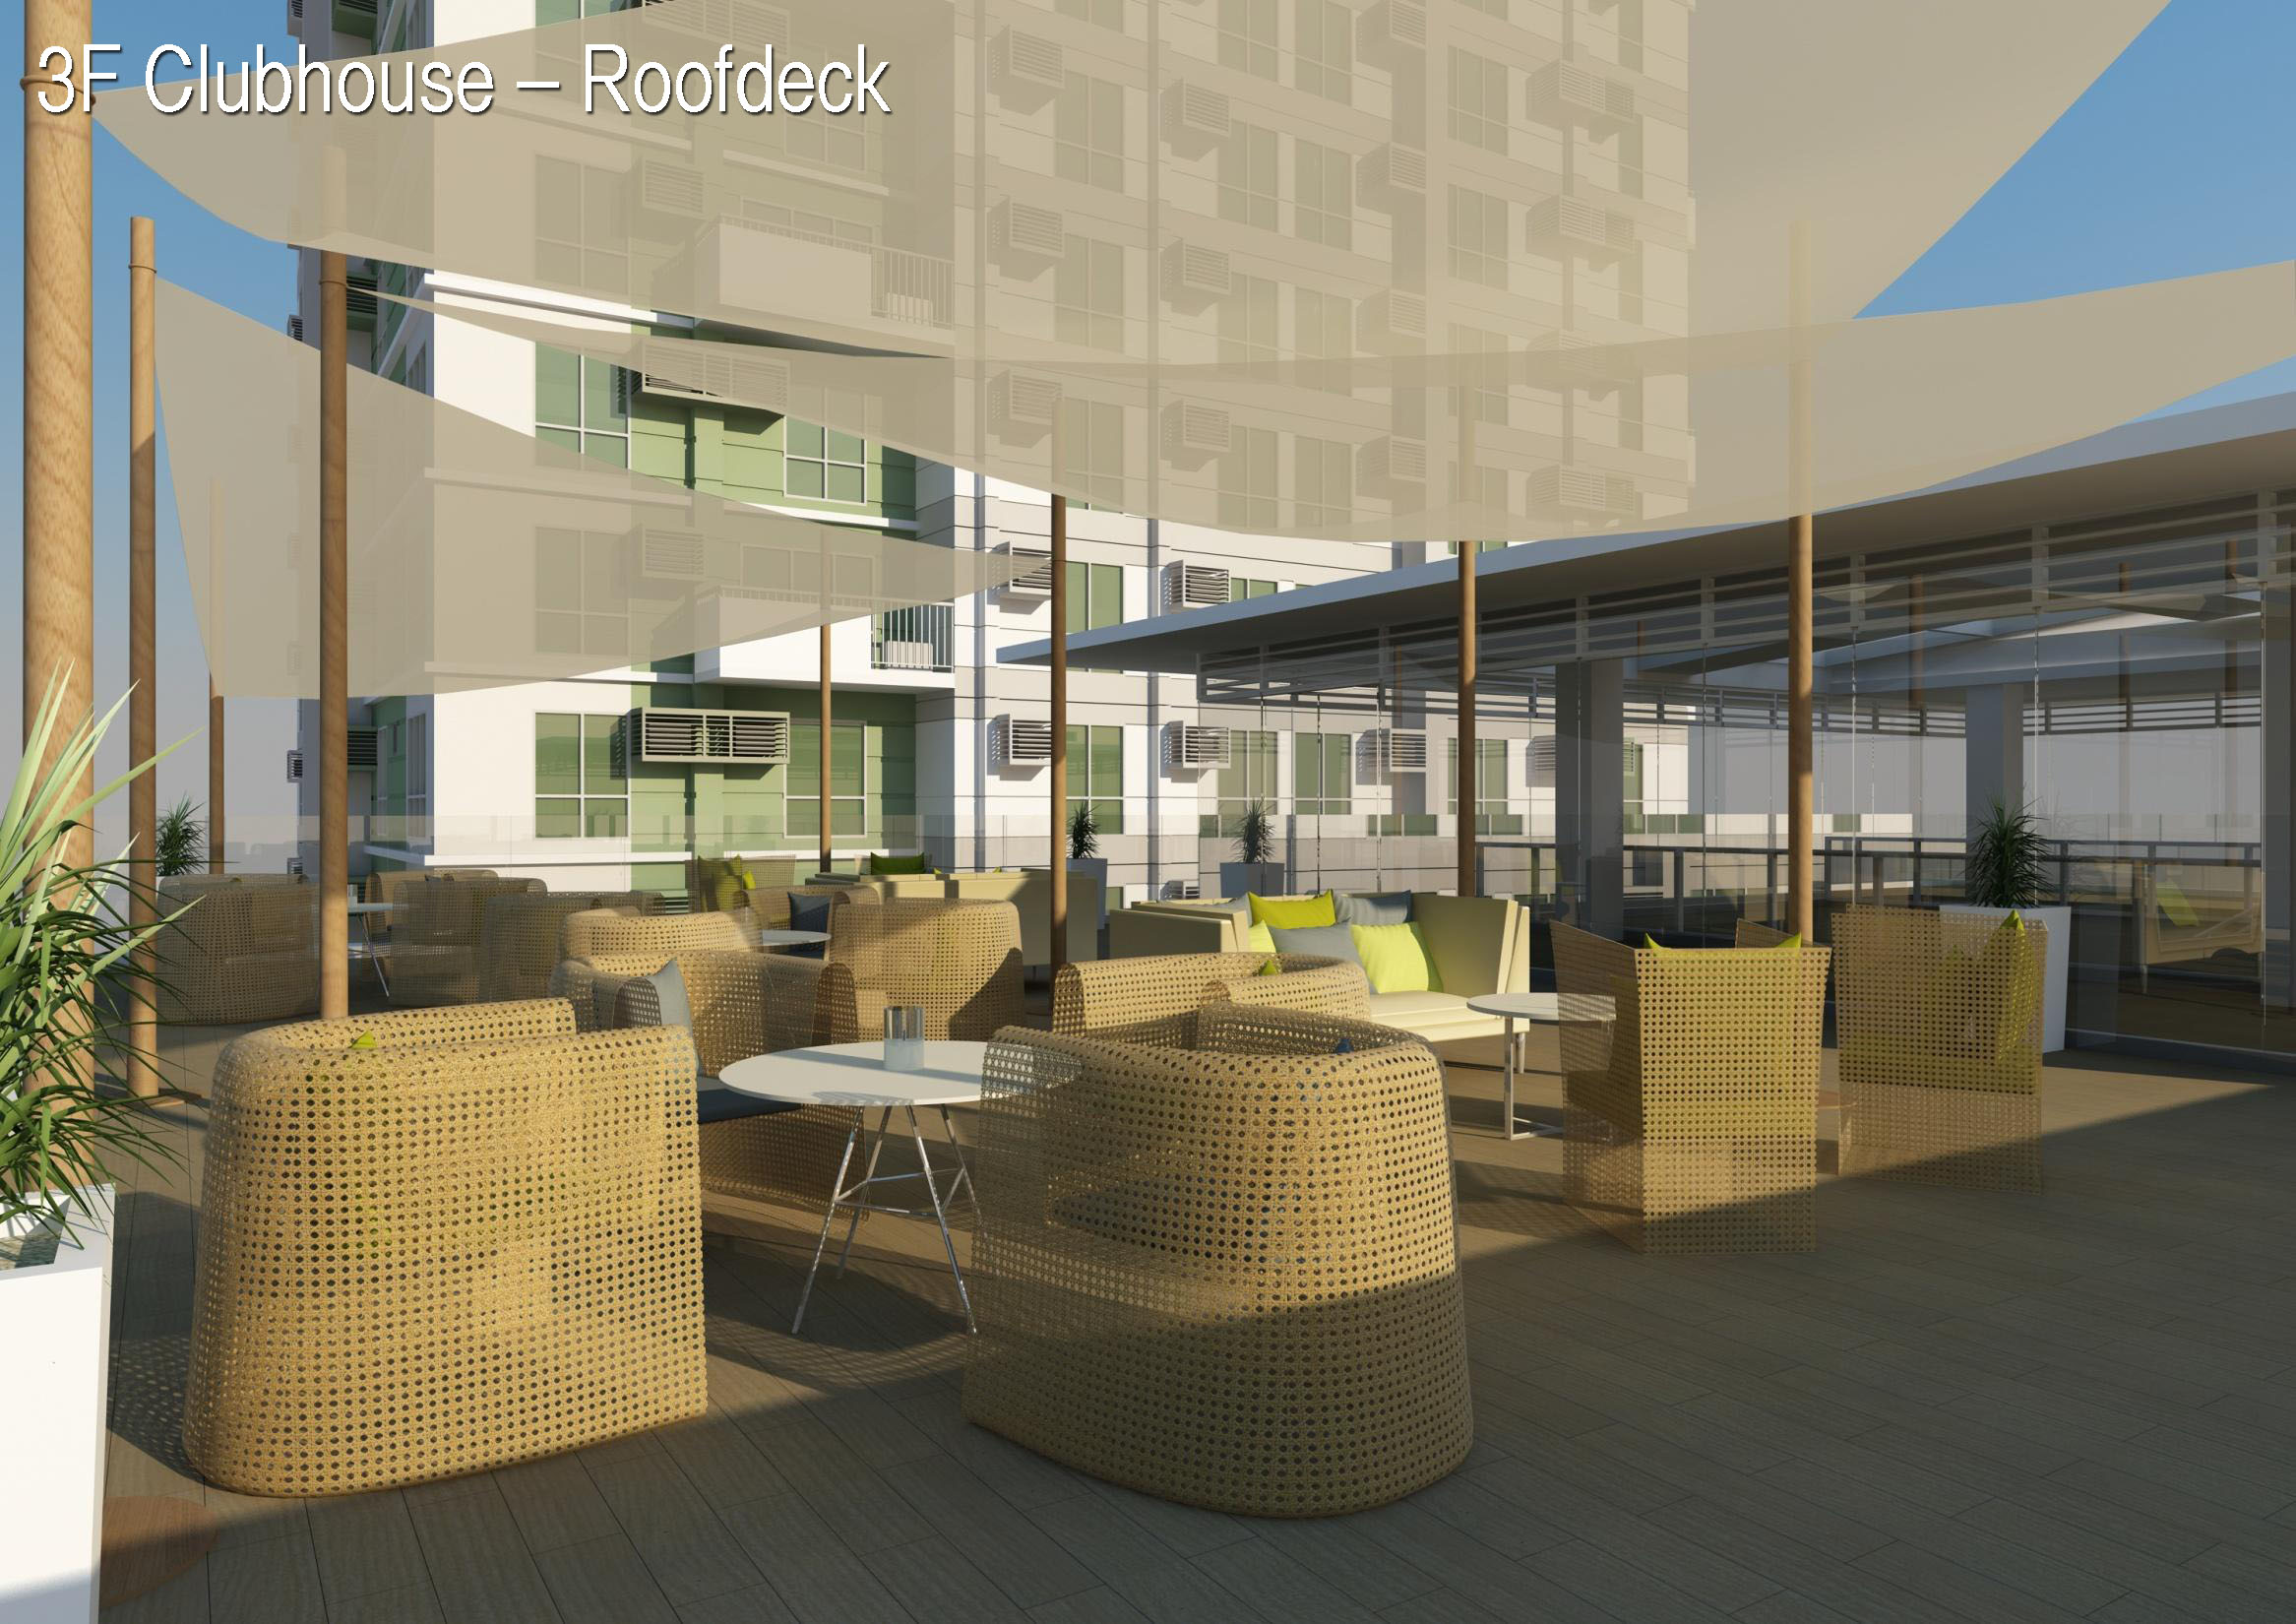 roofdeck at the clubhouse abreeza place davao